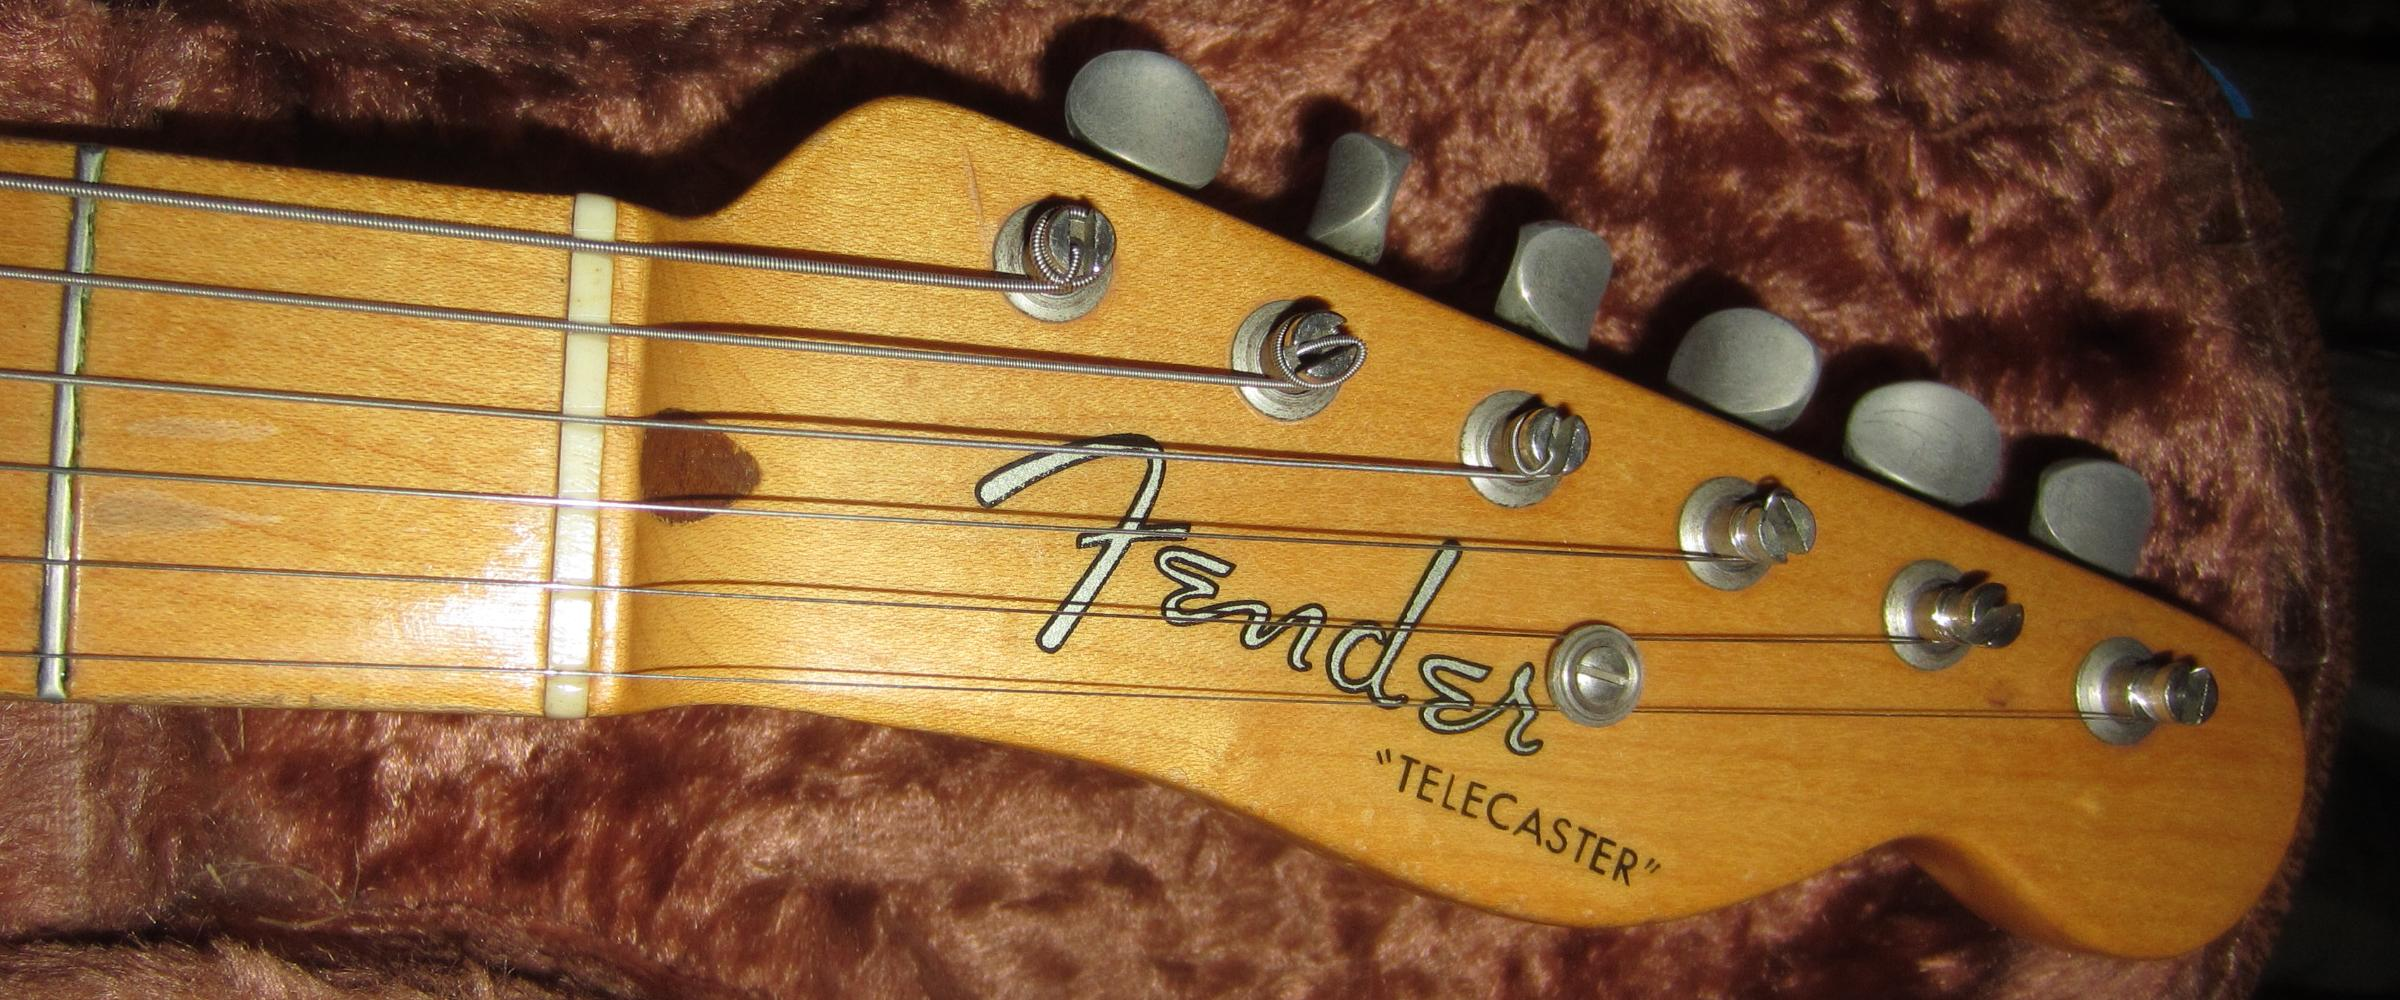 1952 Fender Telecaster 1953 Tele Guitar 52 53 Wiring Without Capacitor Collector Vintage